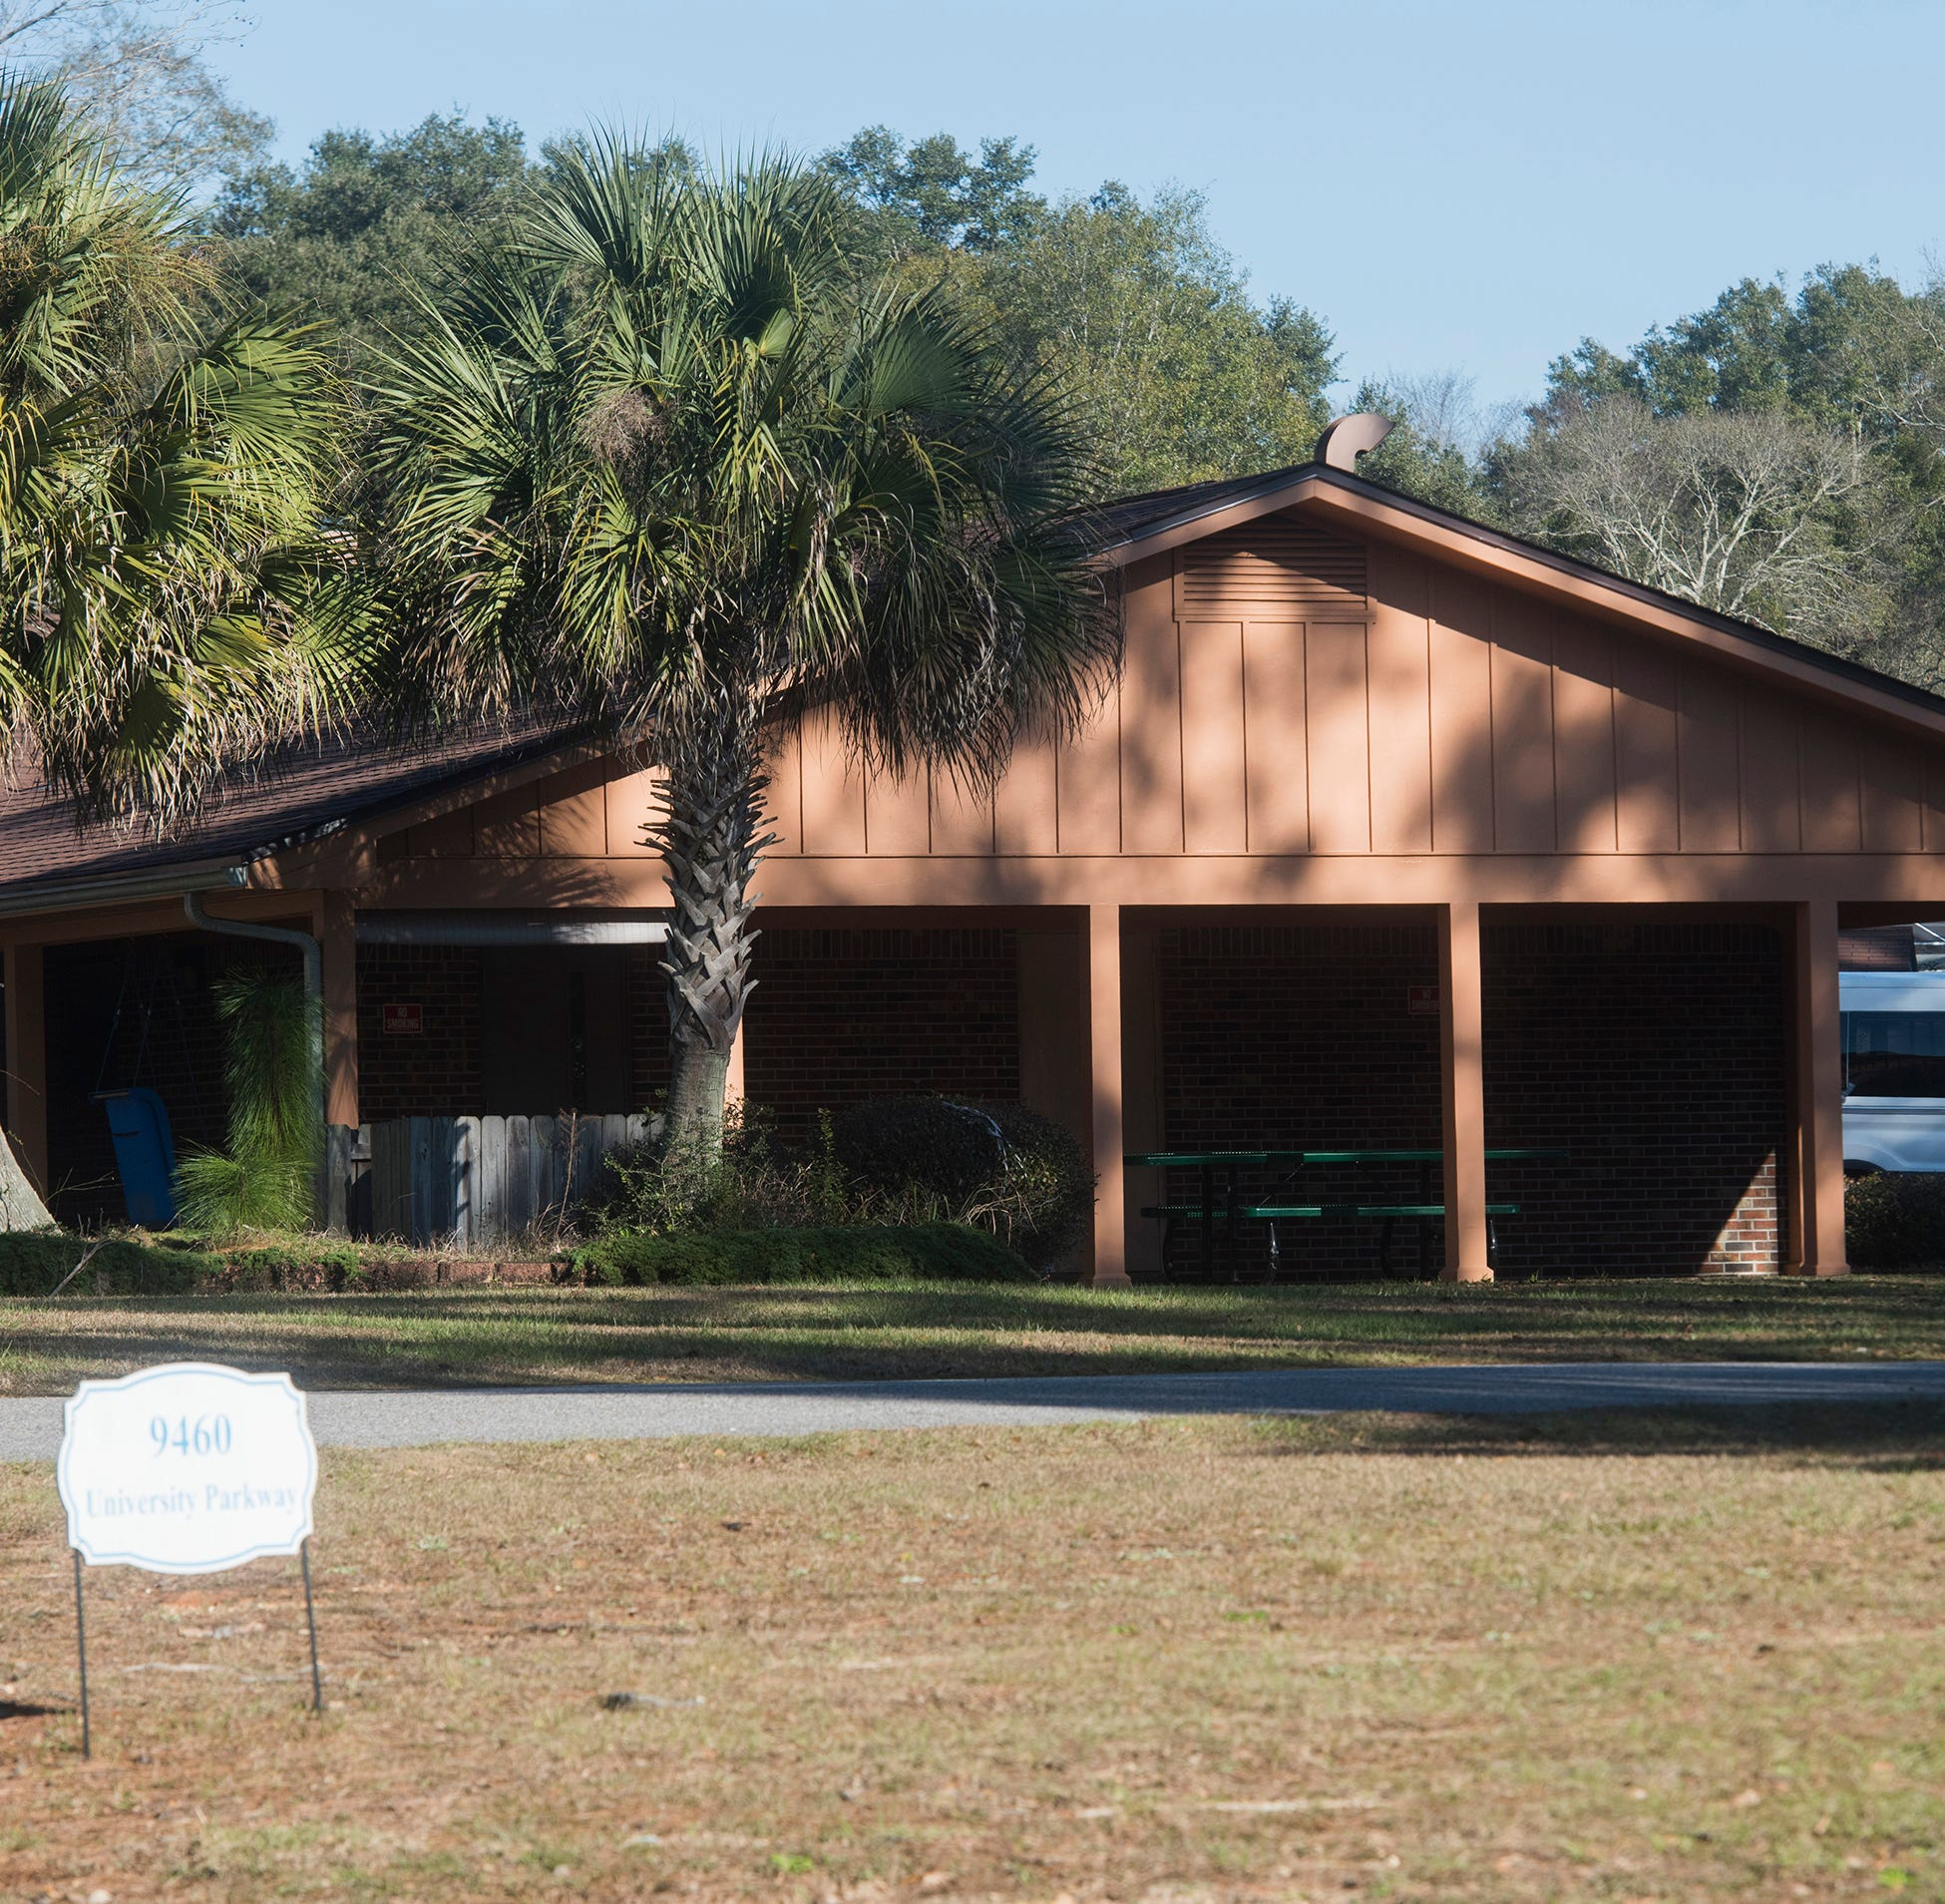 Lawsuit claims disabled woman was raped, impregnated at Florida adult care facility